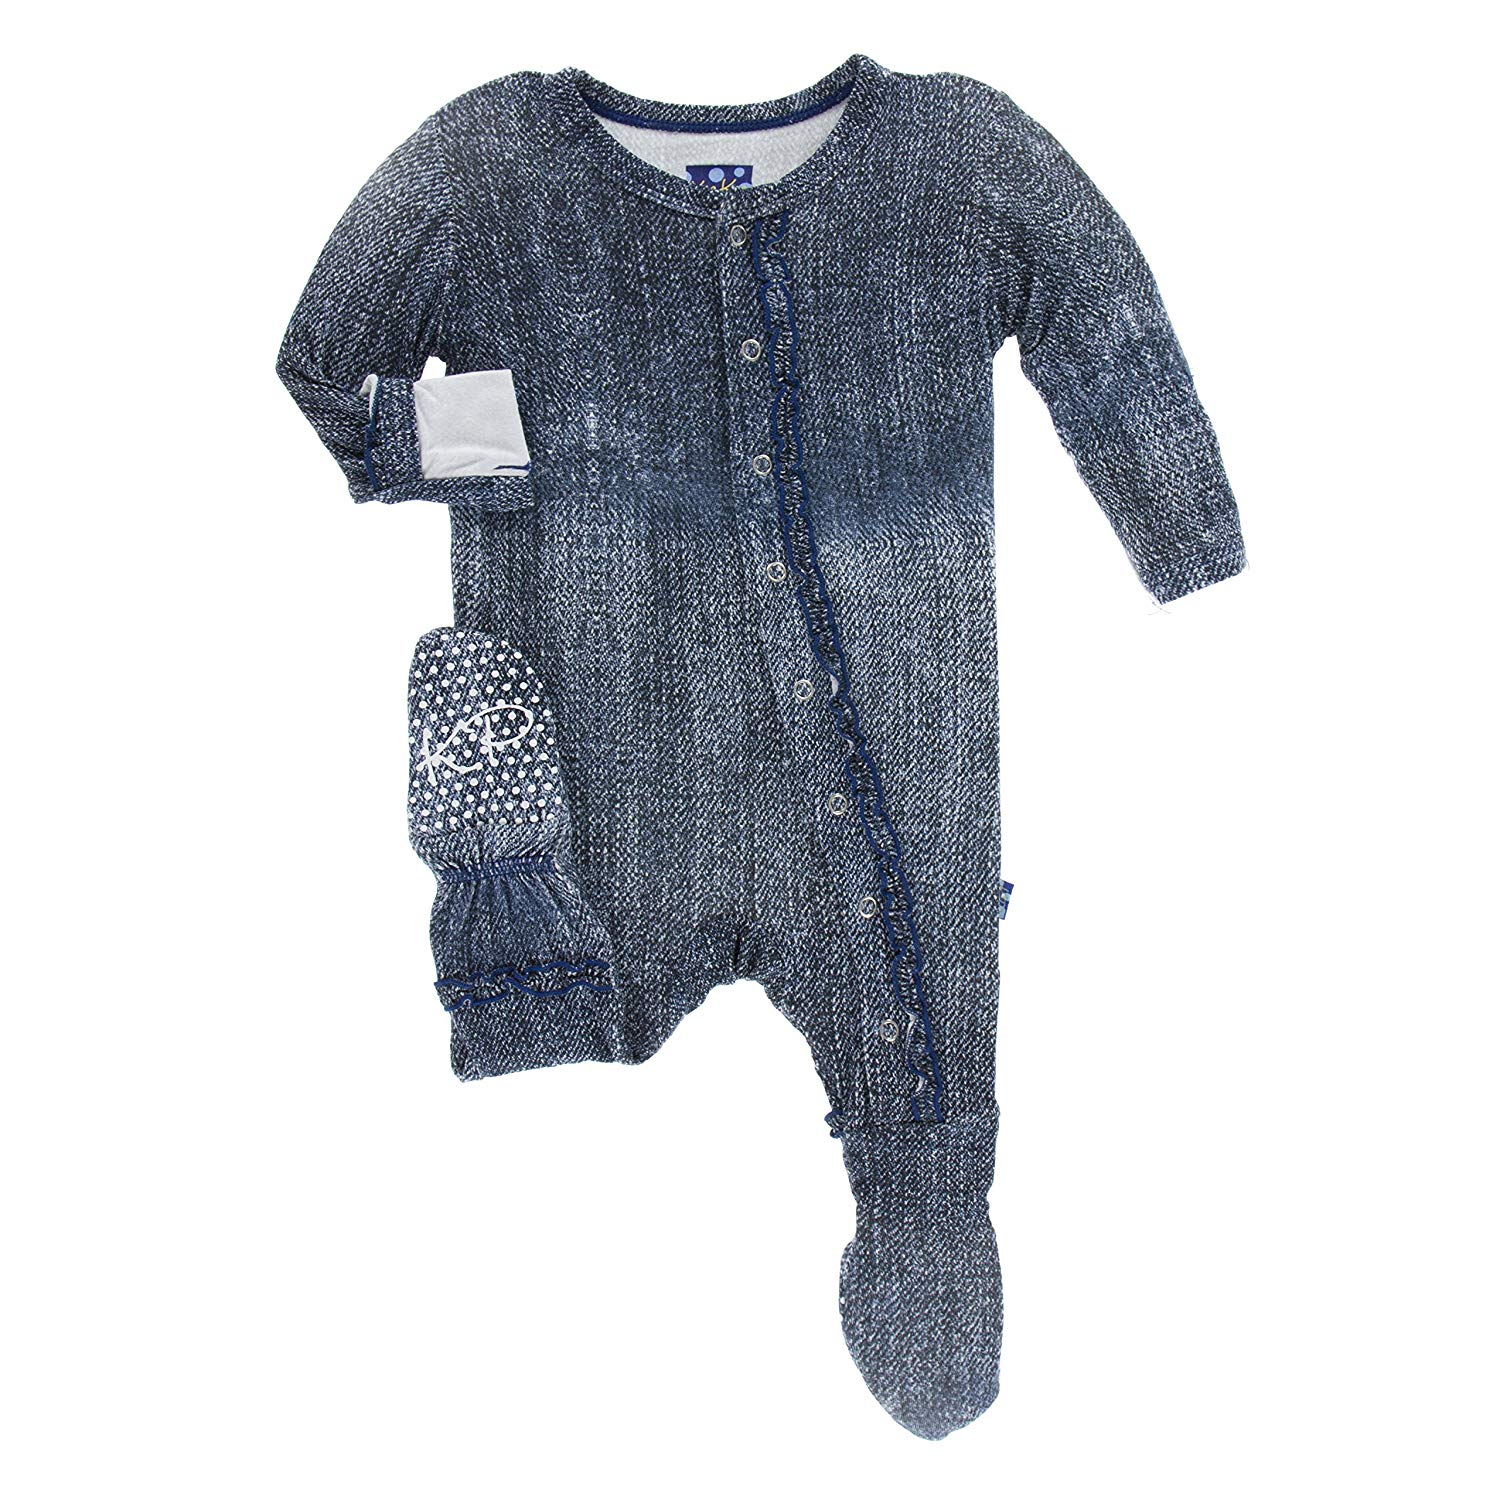 a6124b7d9 Buy KicKee Pants Baby Boys and Girls Newborn Layette Gown and Knot ...